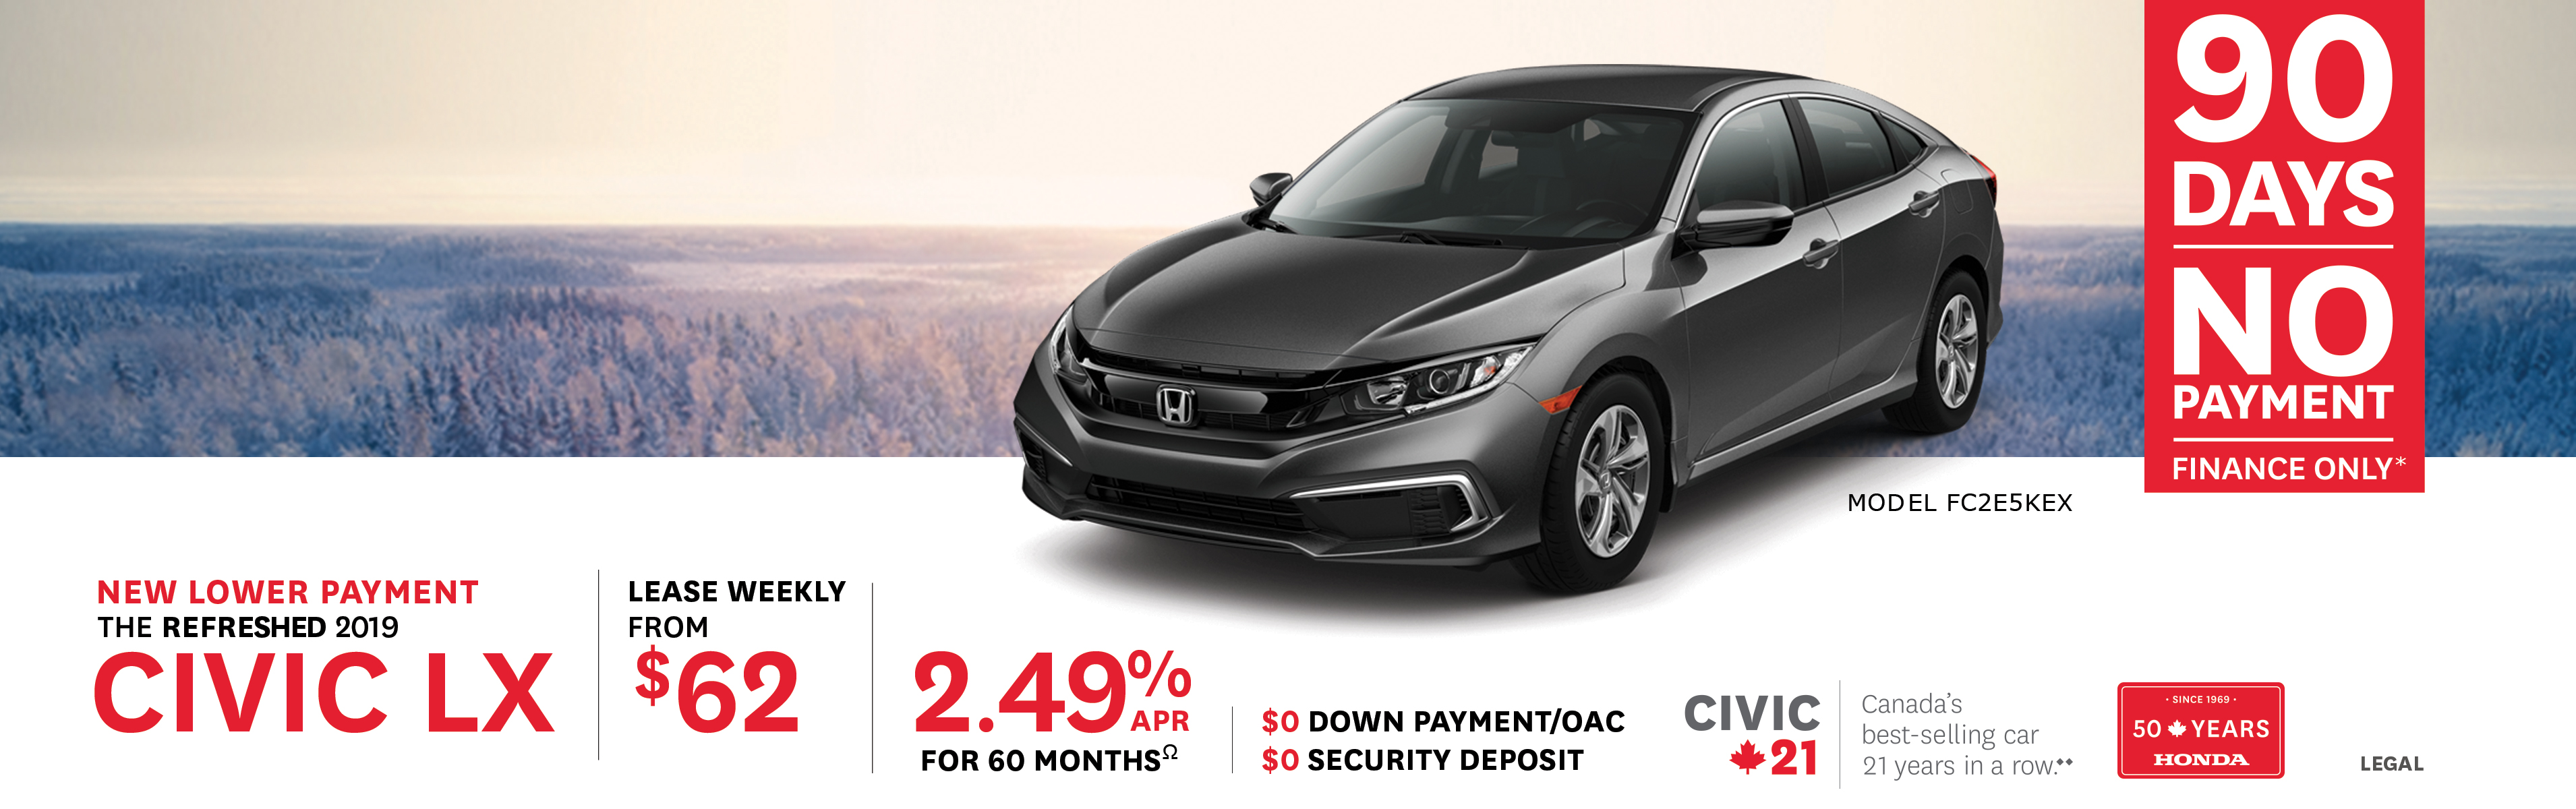 2019 Feb Honda Offer - Civic